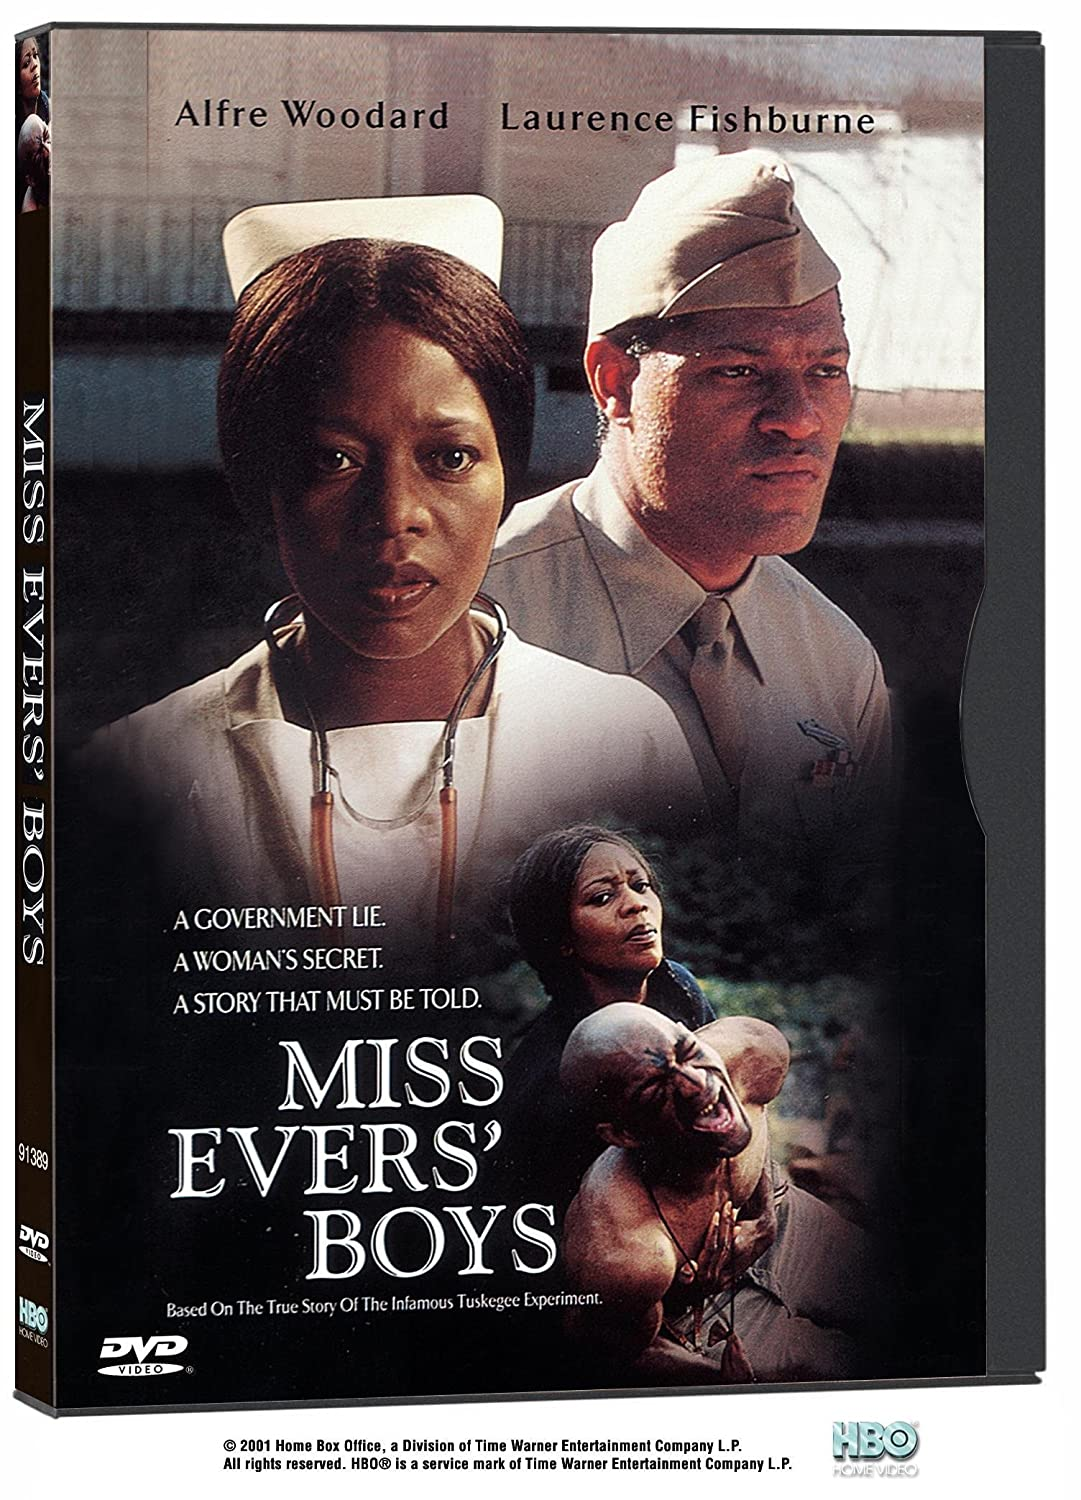 miss evers Watch miss evers' boys starring alfre woodard in this drama on directv it's available to watch on tv, online, tablets, phone when nurse eunice evers (alfre woodard) is chosen to facilitate a program intended to curb syphilis rates among african americans in rural alabama, she is gratified to be able to serve her community.